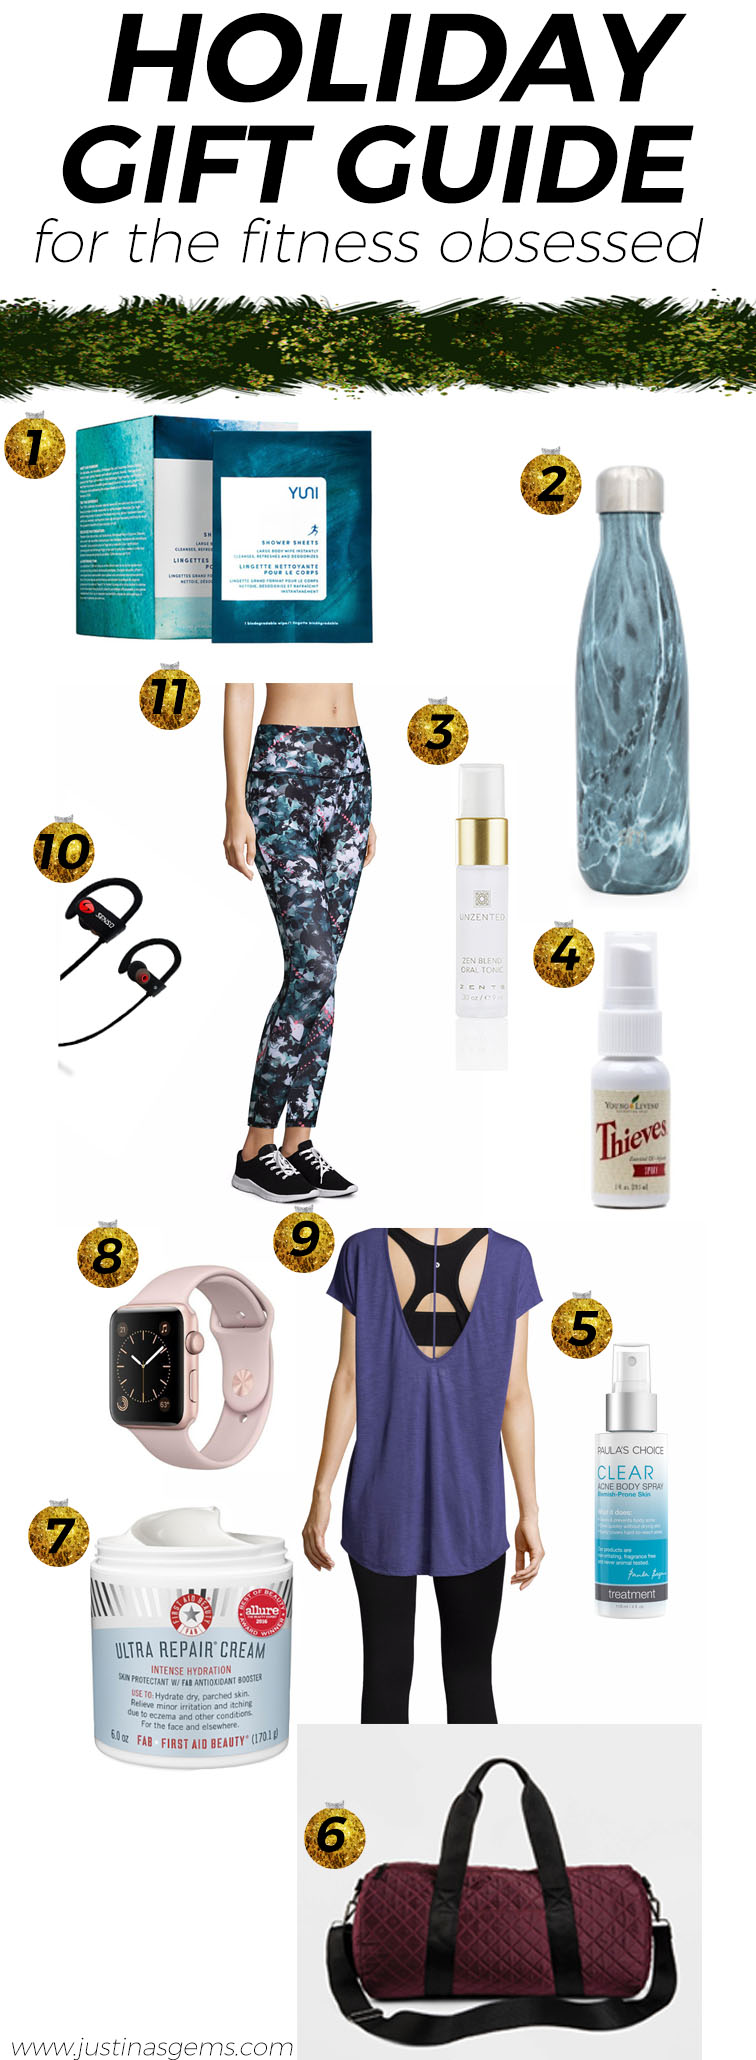 Holiday Gift Guide for the Fitness Obsessed Babe